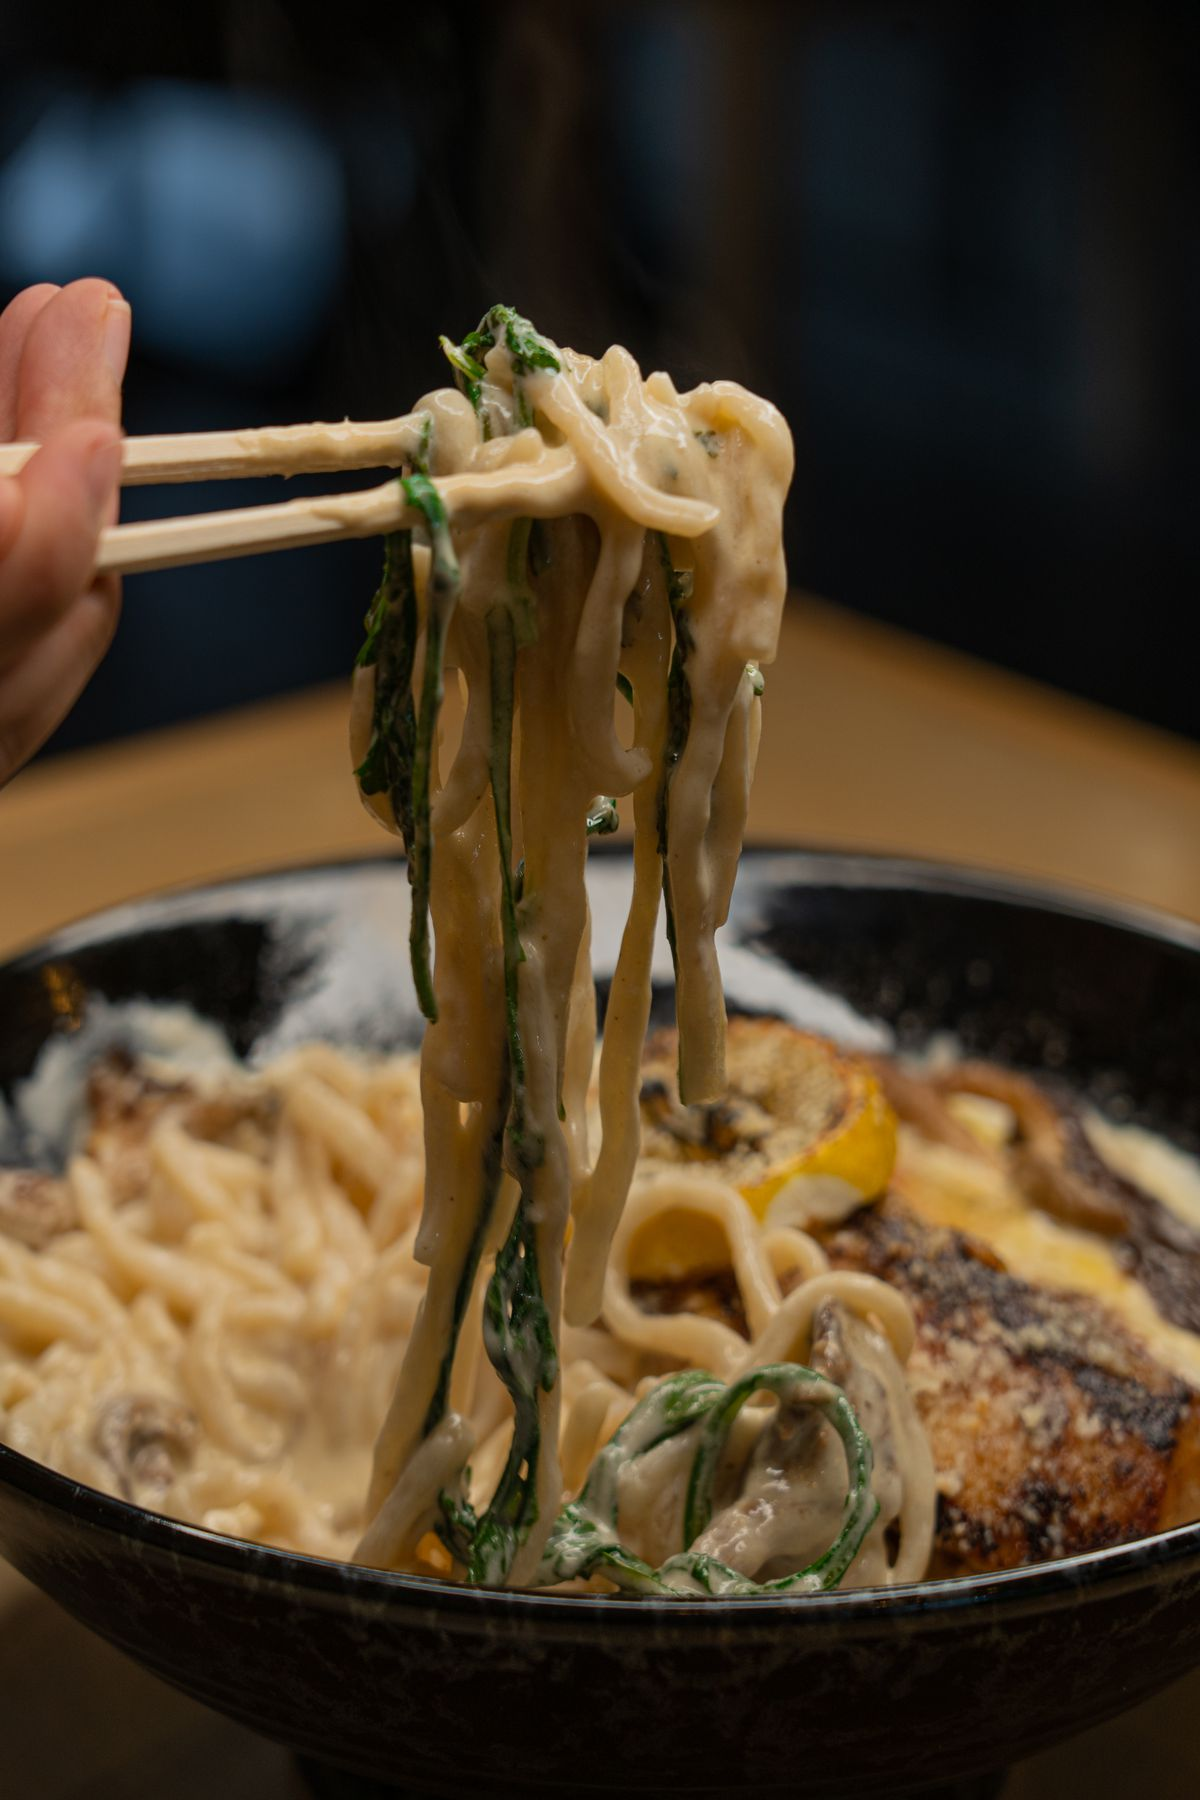 A pair of chopsticks tugs at a bowl of creamy noodles and greens